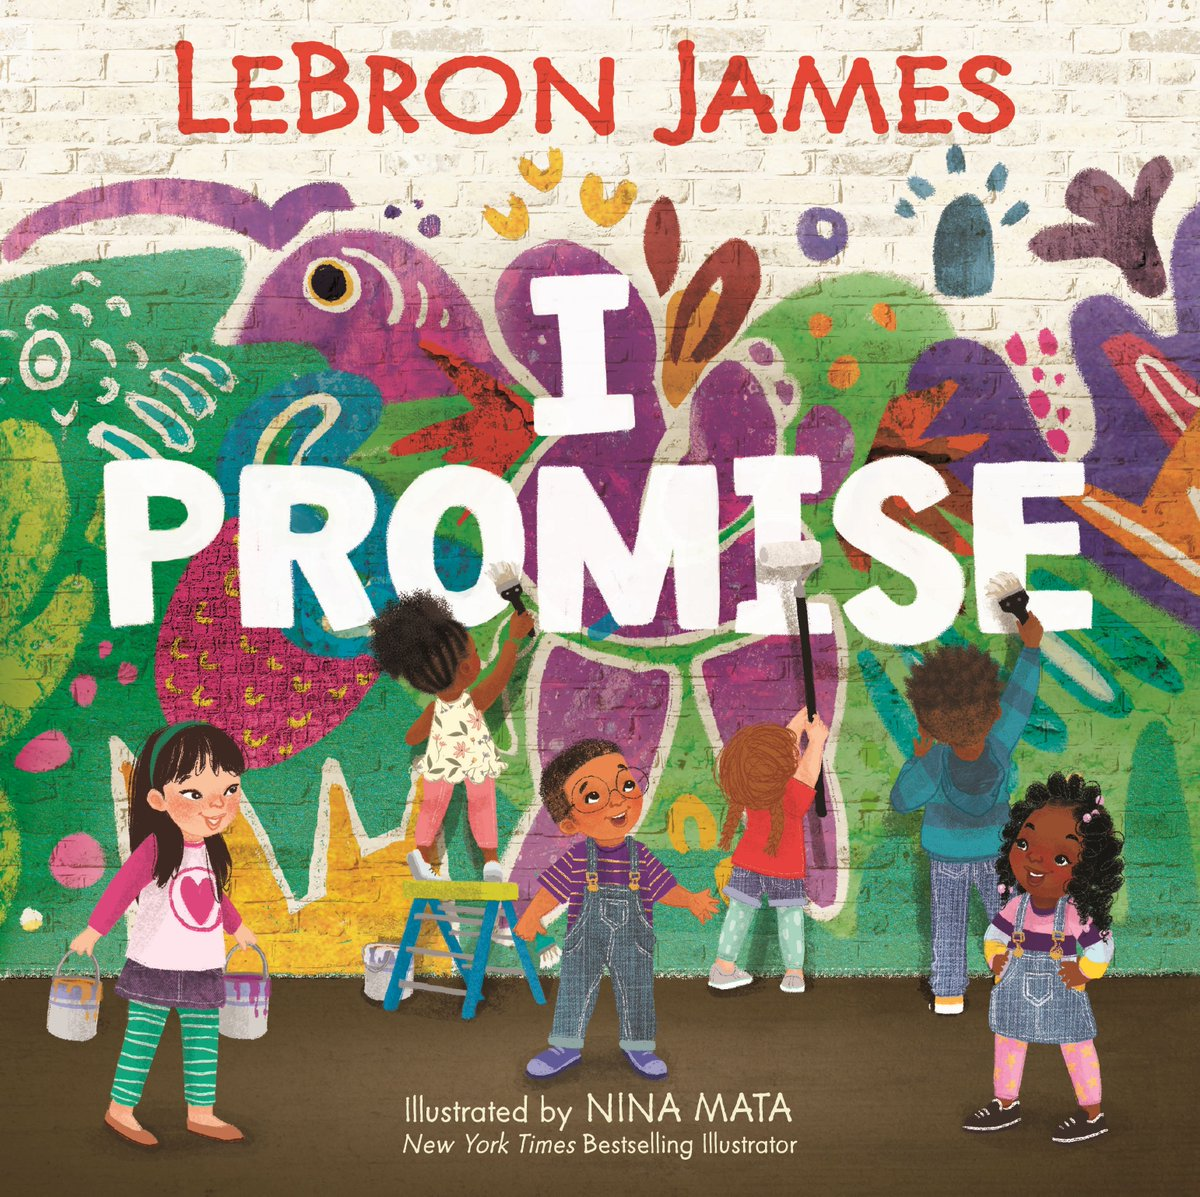 Coming soon!! Our very own children's book @KingJames @HarperCollins 😭 📖 #IPROMISE harpercollins.com/9780062971067/…